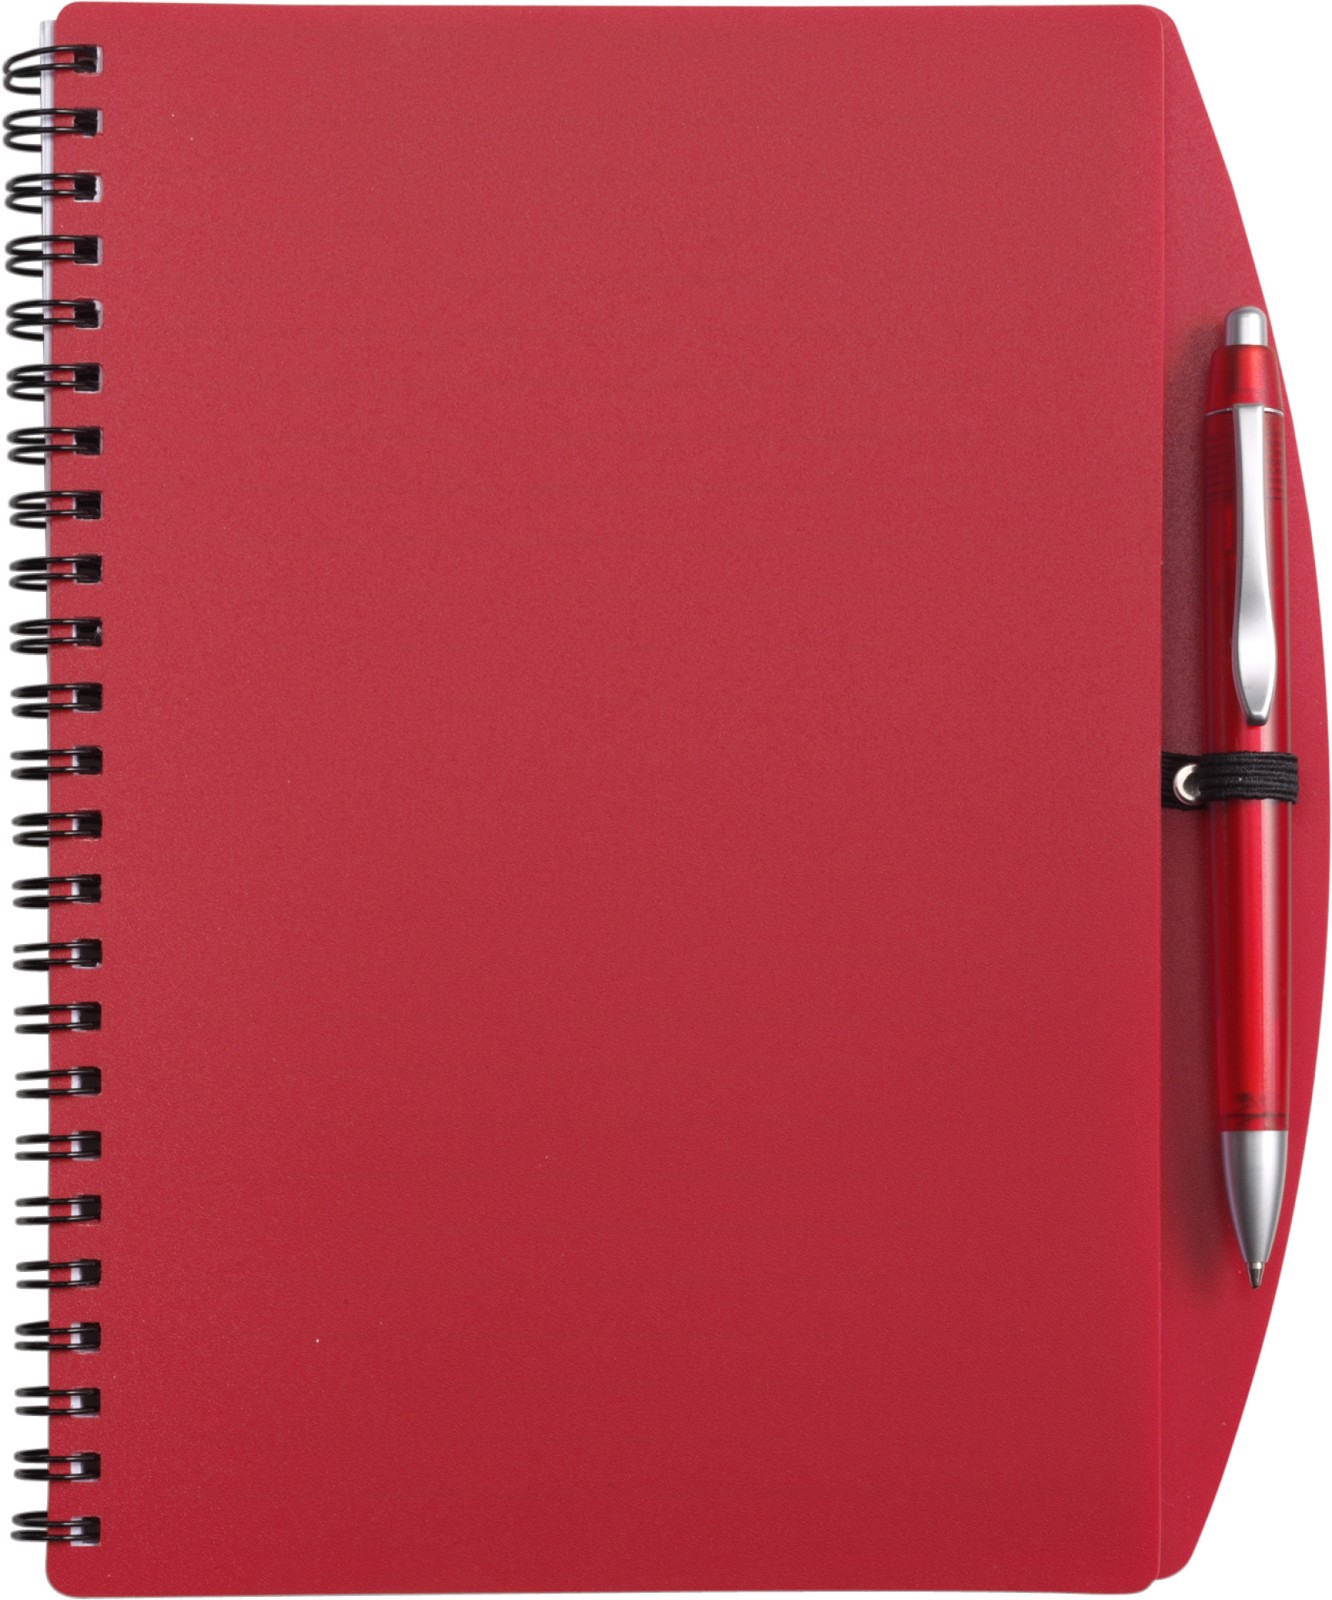 PP notebook with ballpen - Red